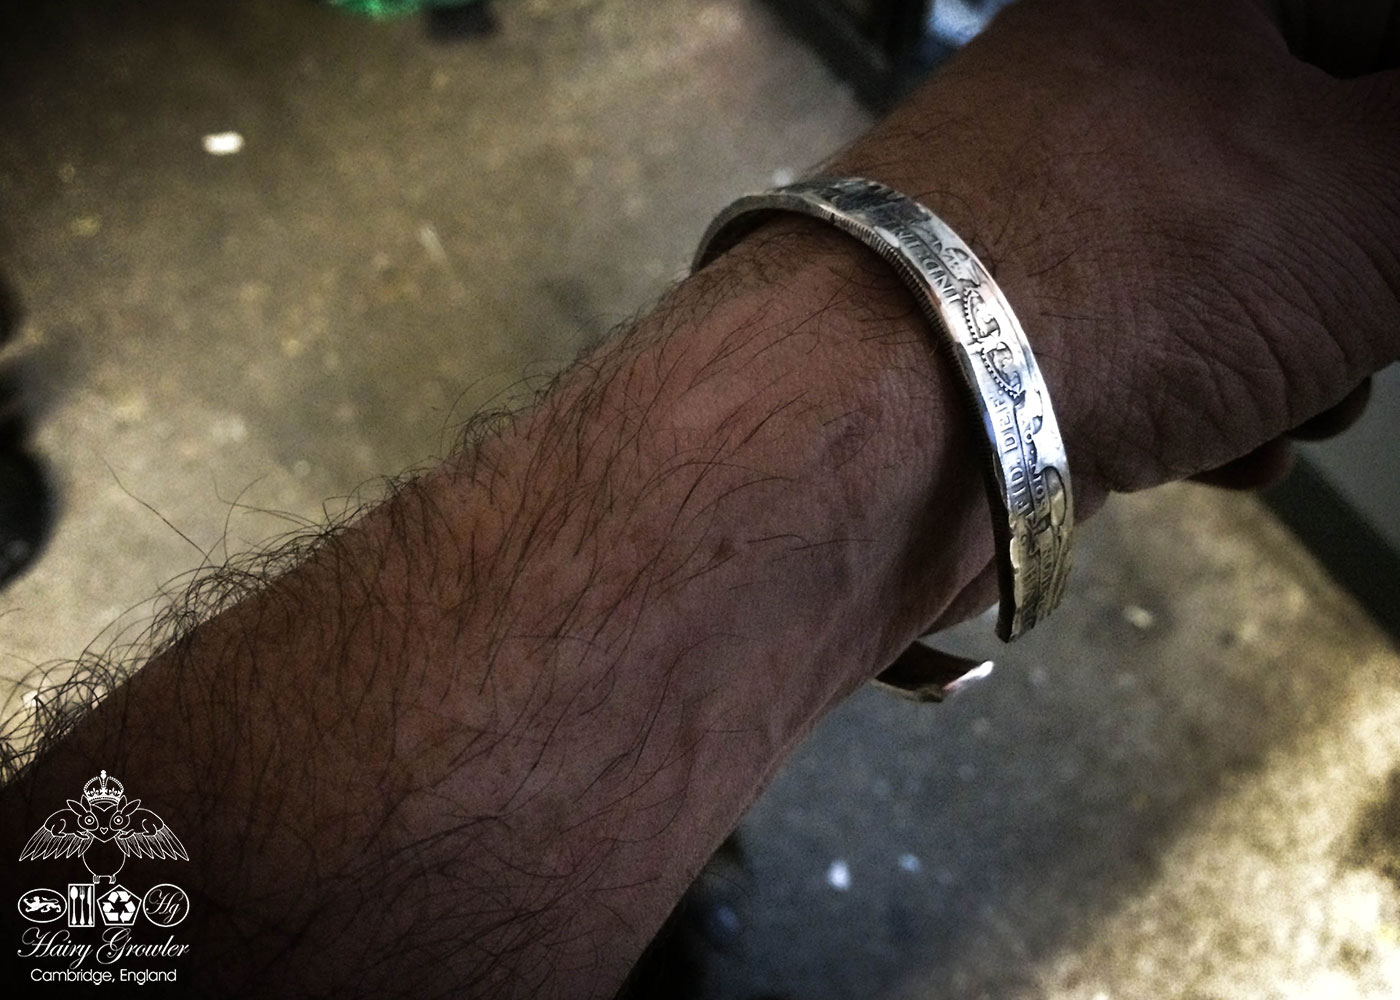 Handcrafted and upcycled silver half crown coin kuff bangle bracelet